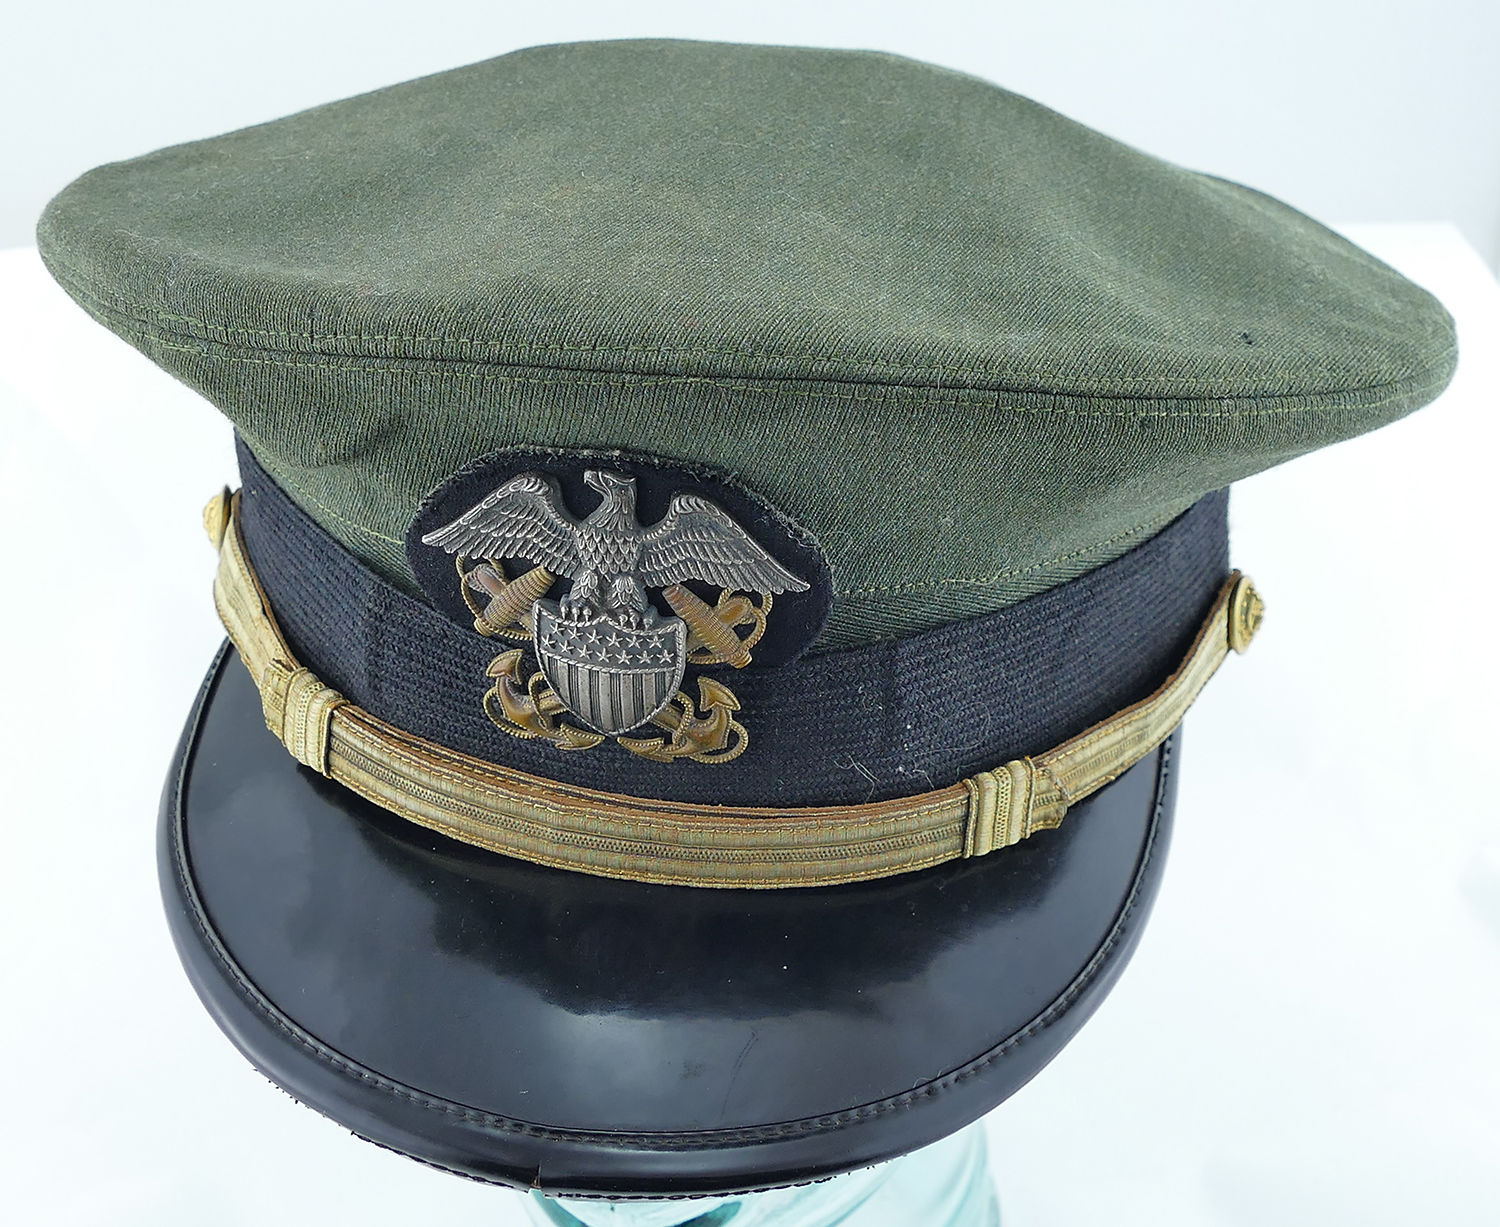 US Navy Aviation Officers Visor Cap. SOLD.  US Navy Aviation Officers Visor Cap 2 US Navy Aviation Officers Visor Cap 3  US Navy Aviation Officers Visor Cap 4 ... 7b95402b9d5